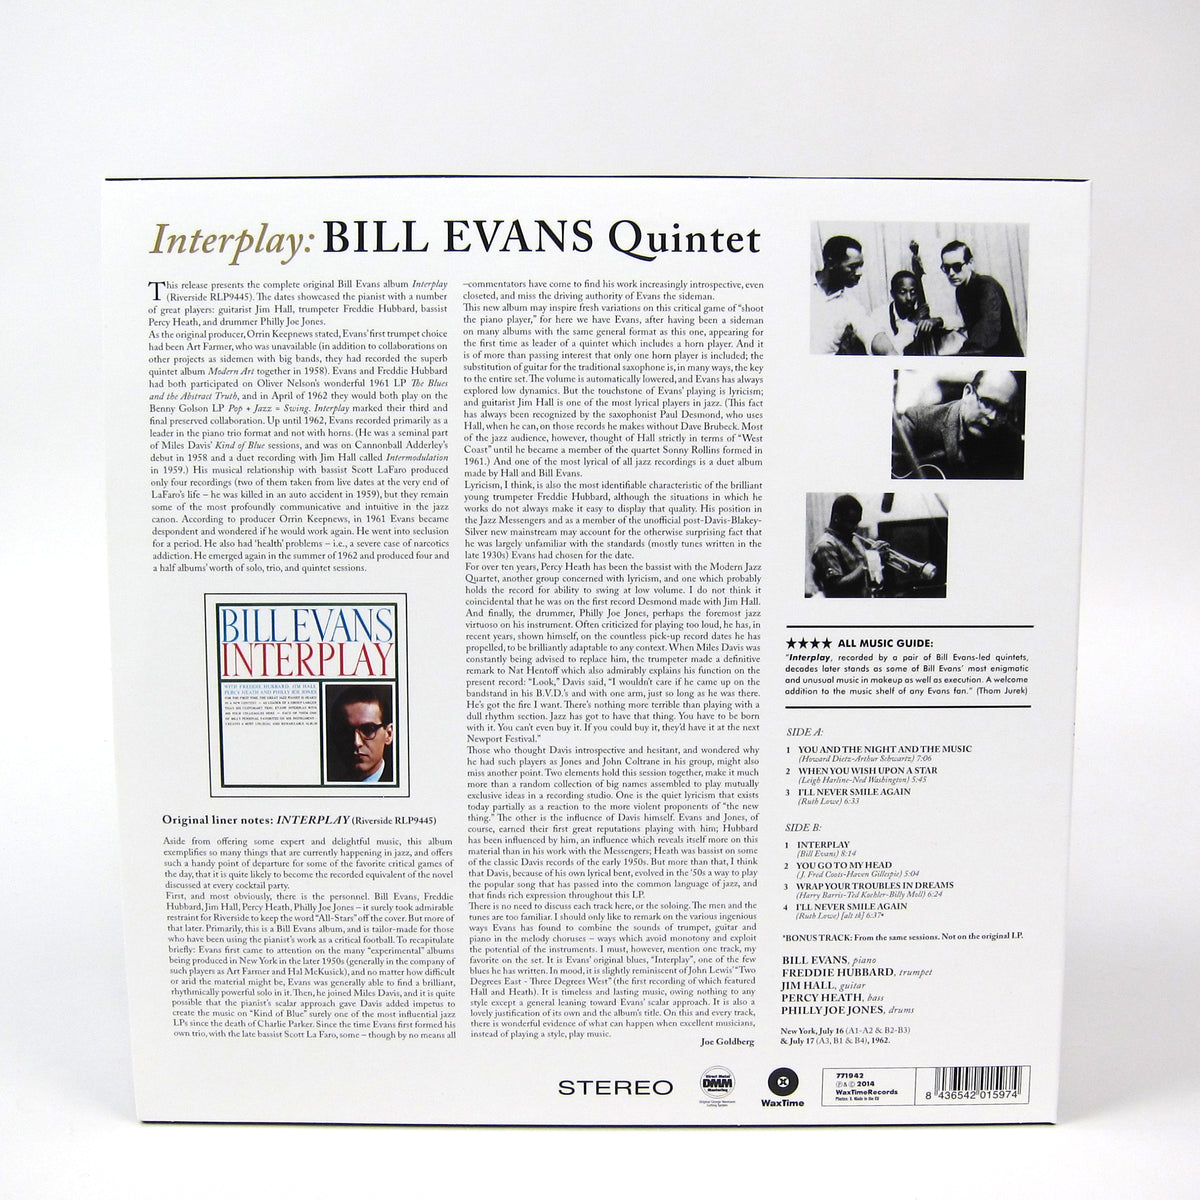 Bill Evans: Interplay (180g) Vinyl LP